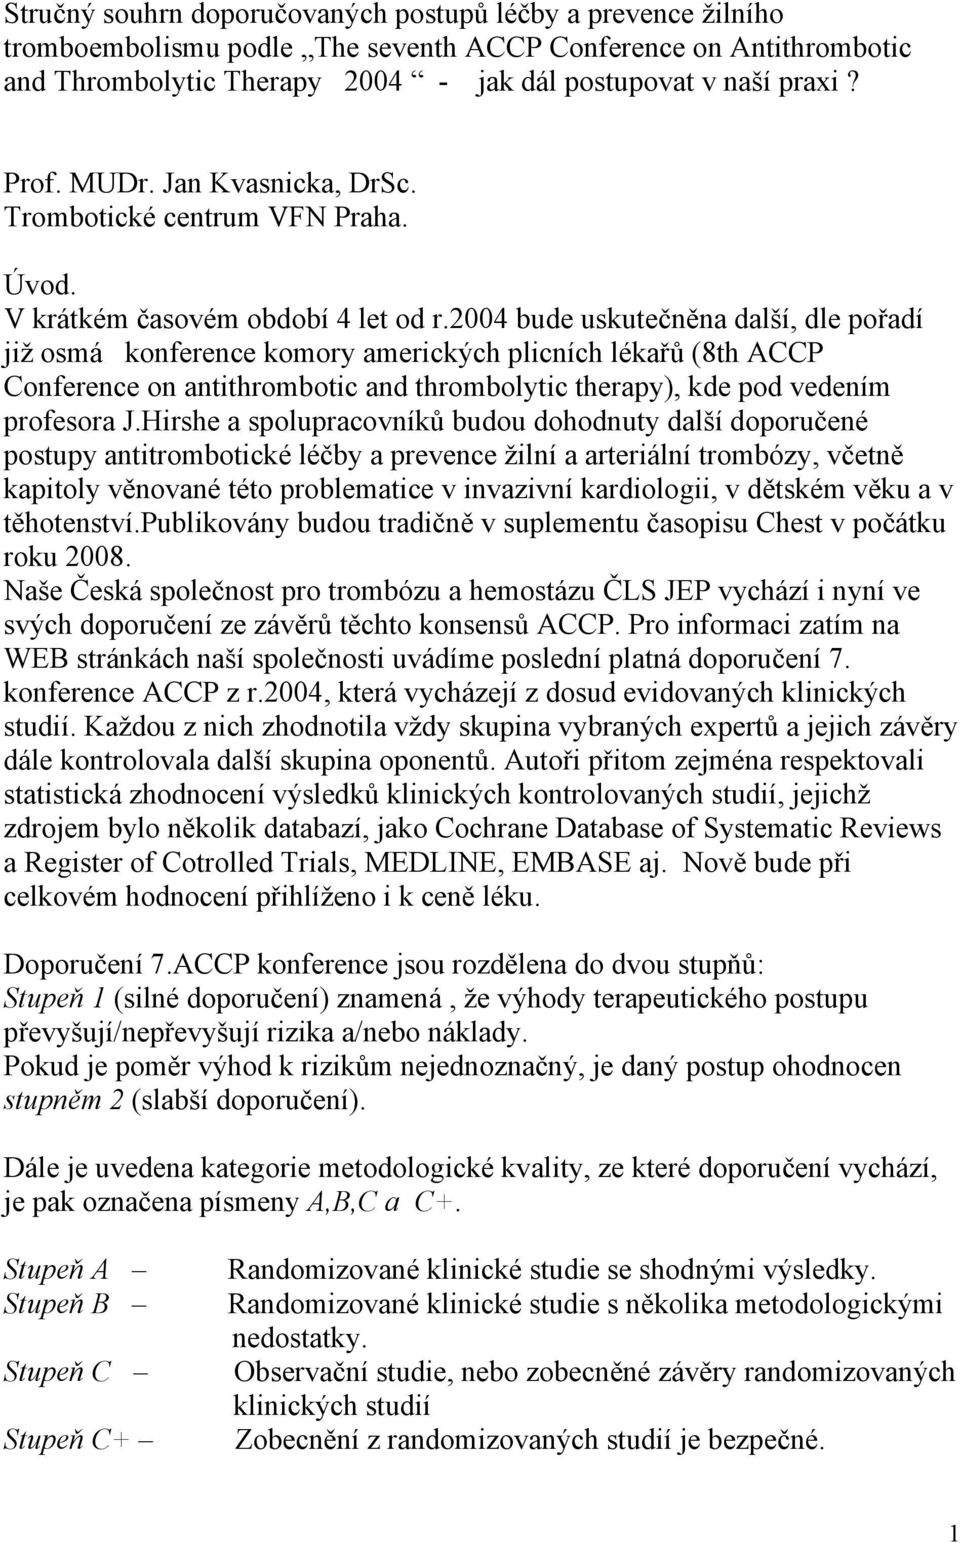 2004 bude uskutečněna další, dle pořadí již osmá konference komory amerických plicních lékařů (8th ACCP Conference on antithrombotic and thrombolytic therapy), kde pod vedením profesora J.